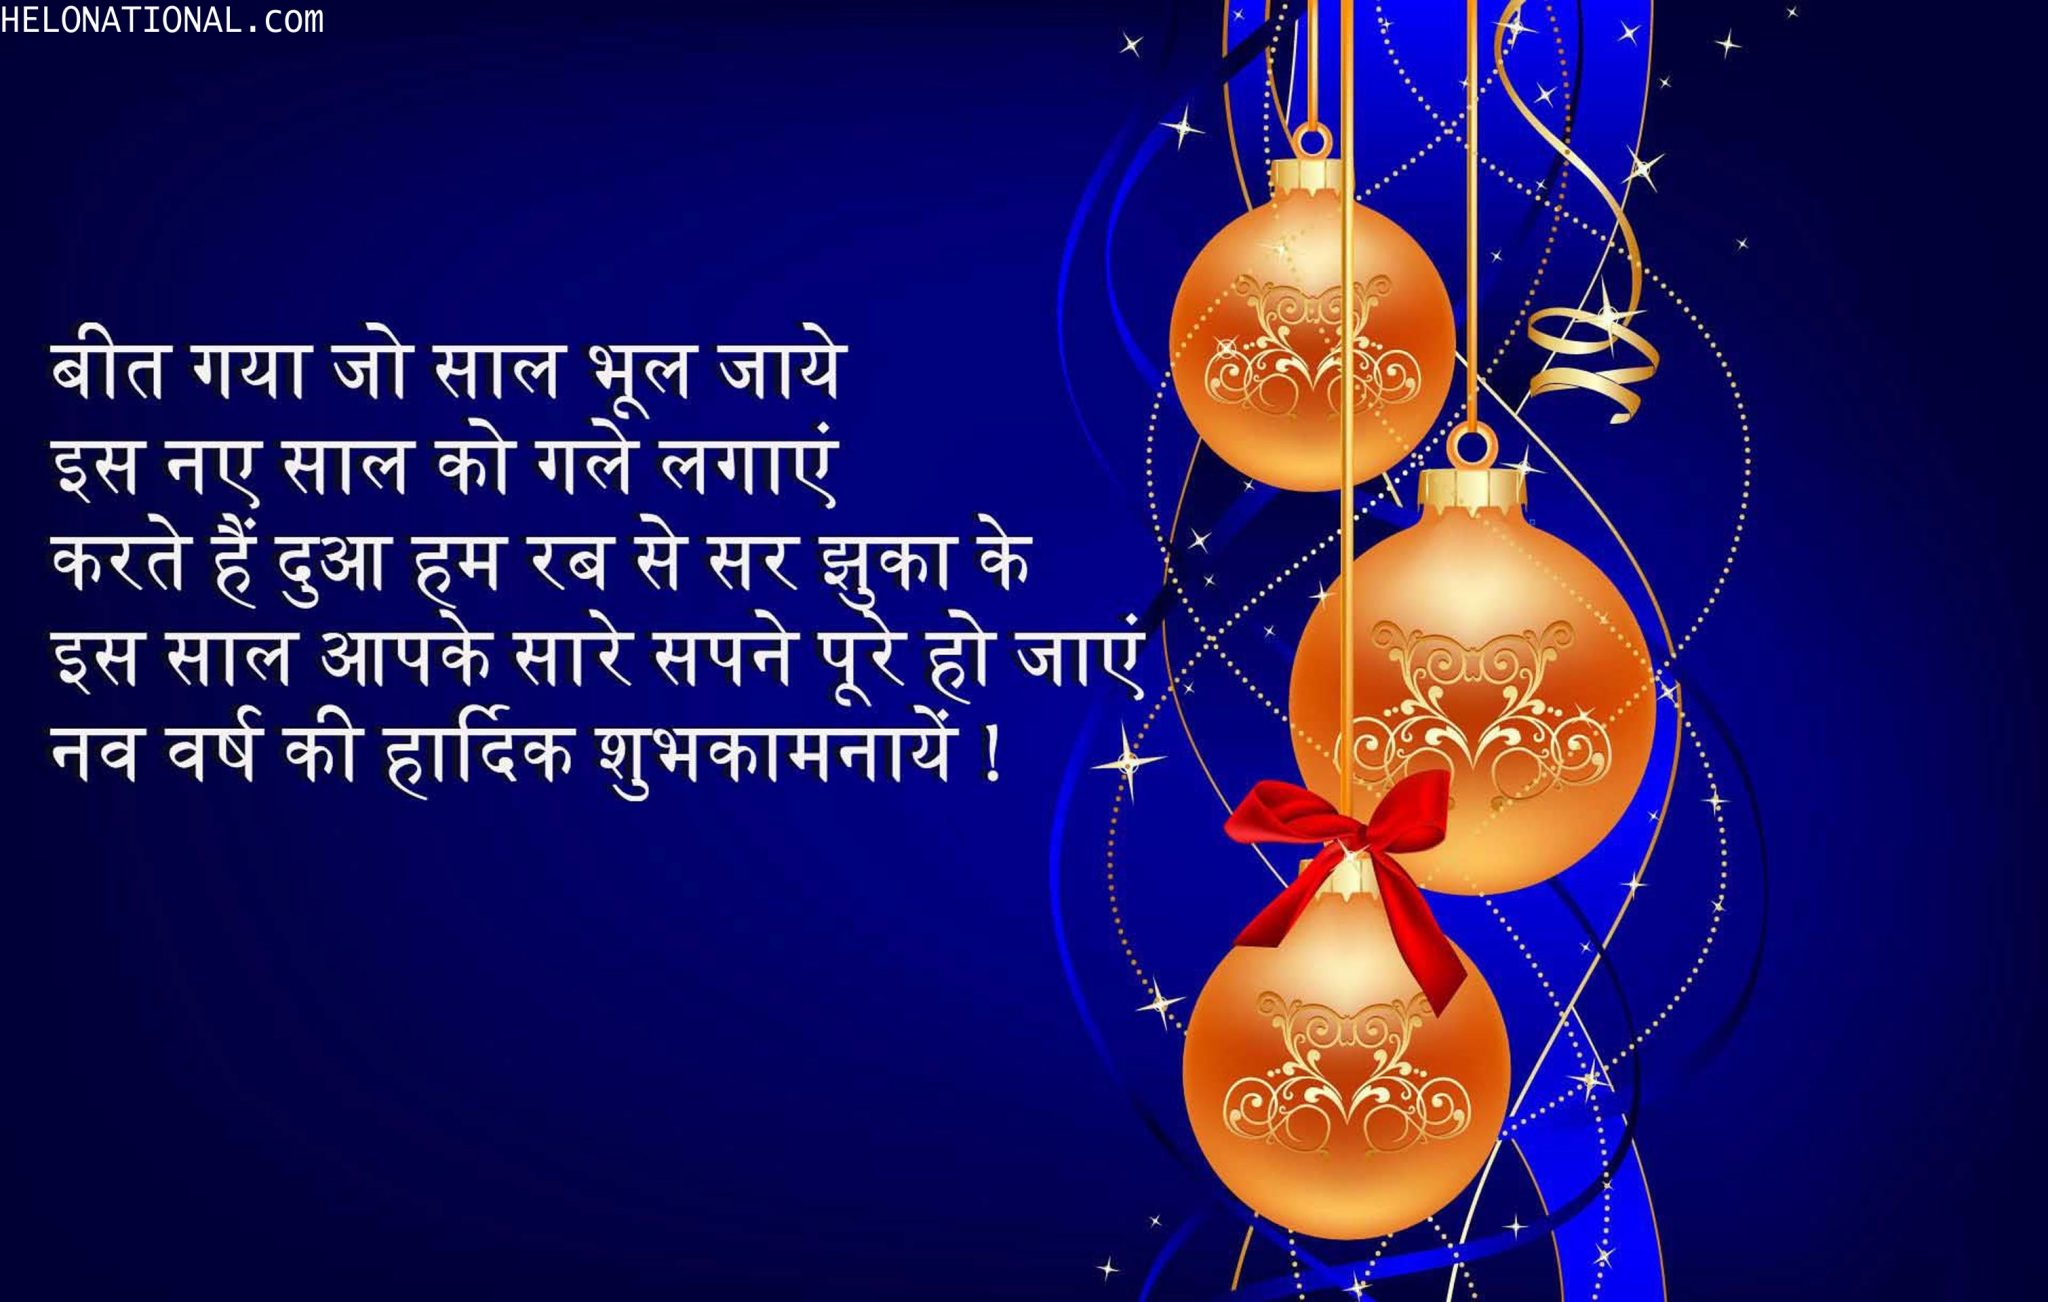 Happy New Year 2021 Hindi Wishes